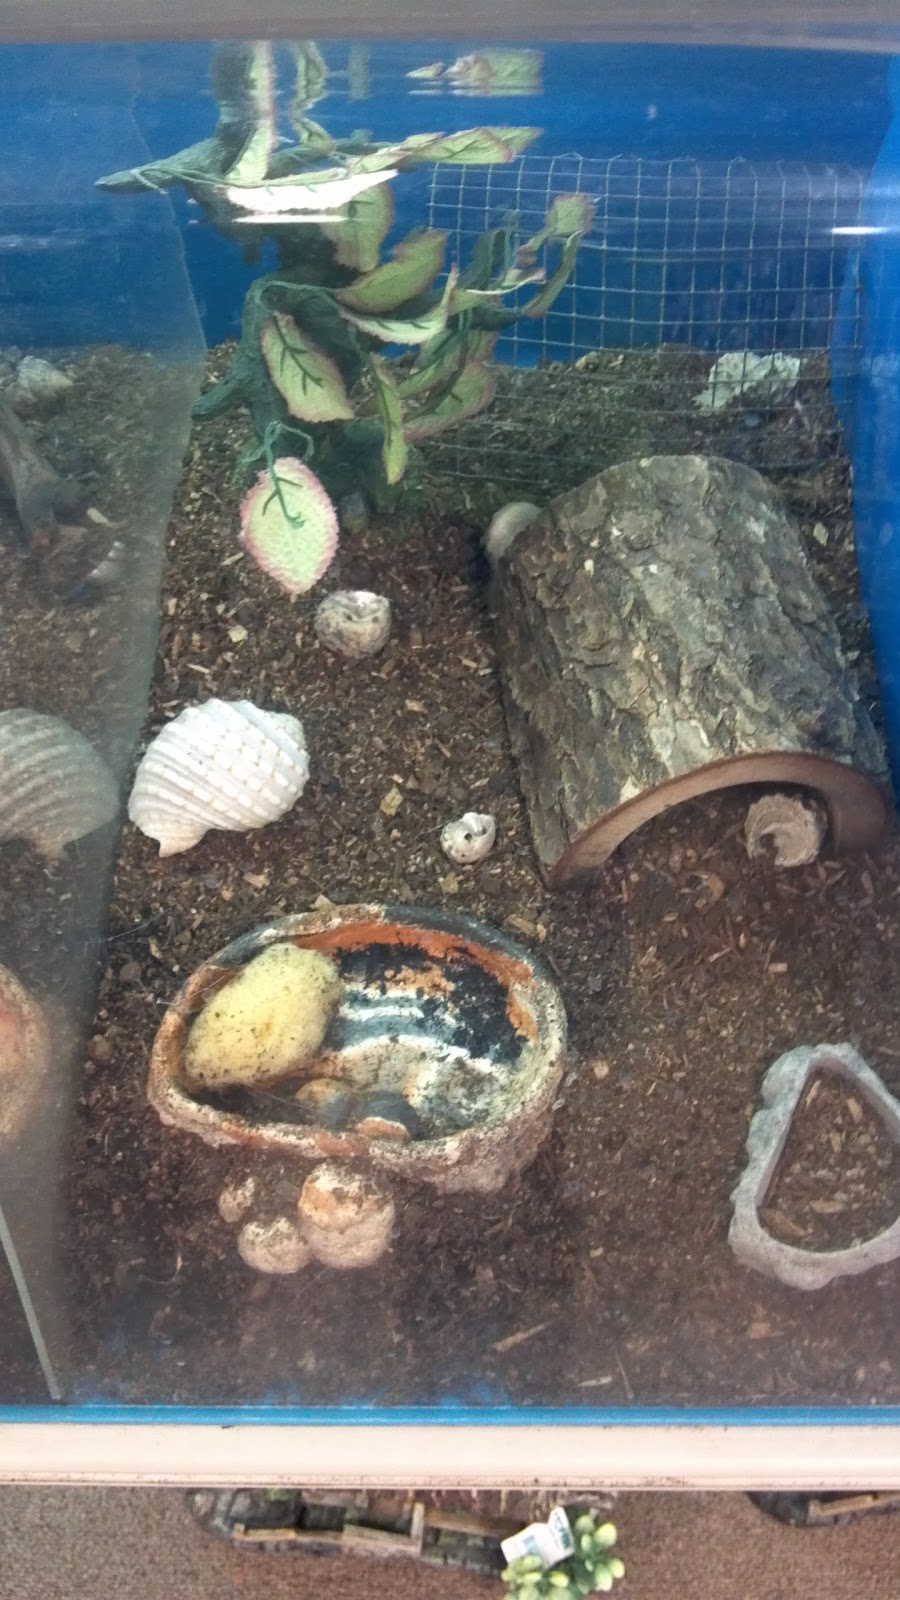 Best Hermit Crab Habitat Pictures to Pin on Pinterest ...